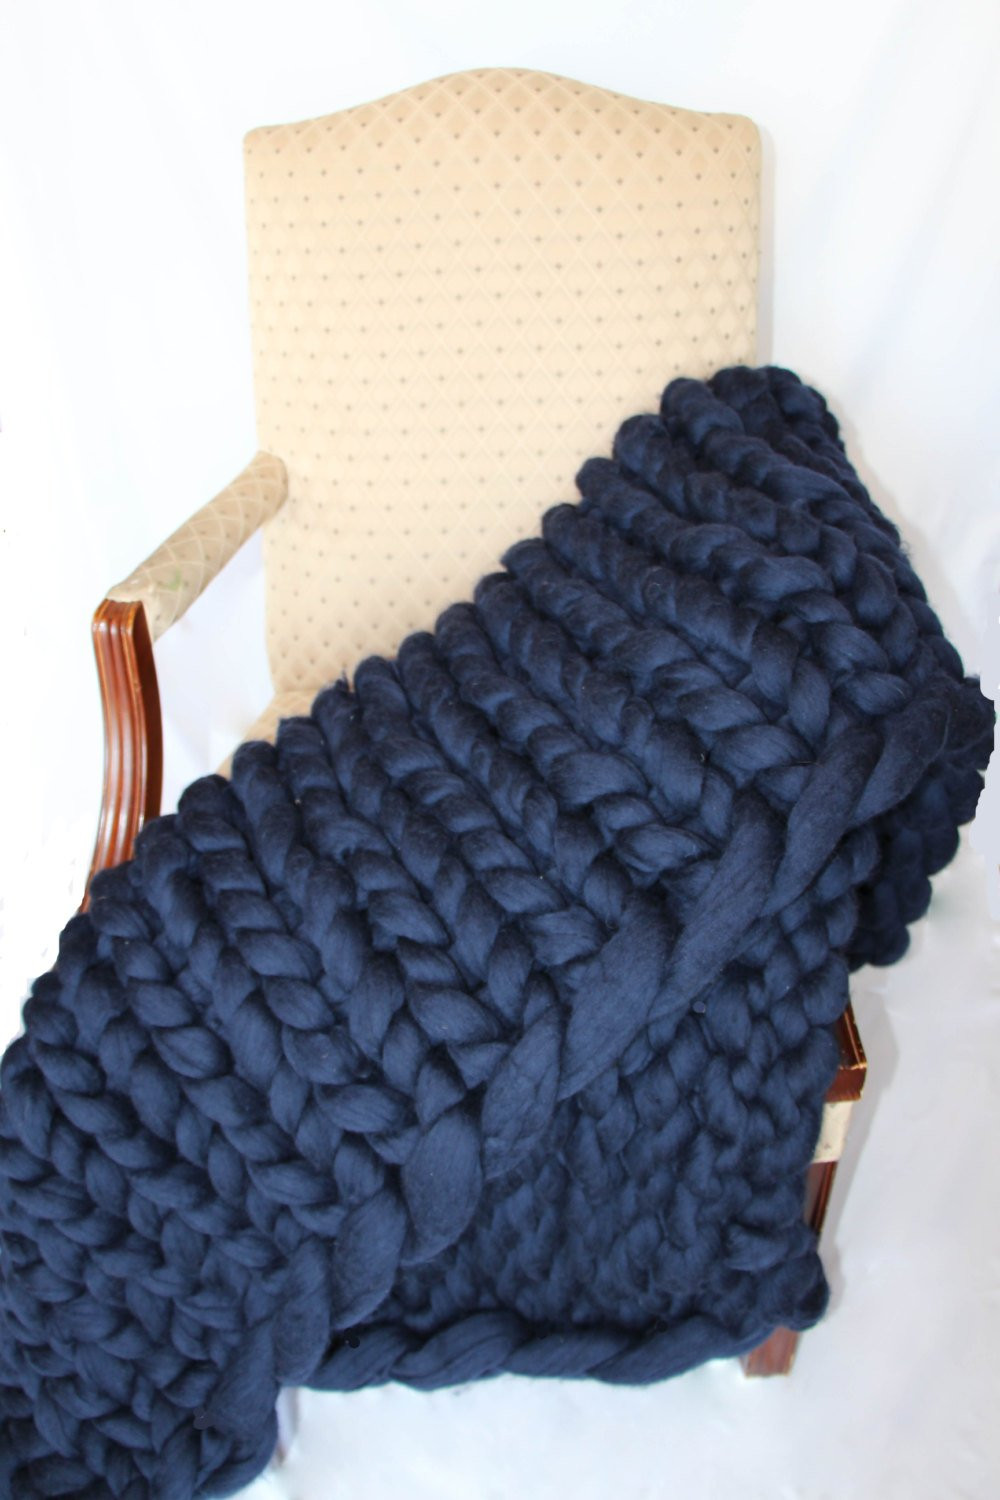 Knit Throw Blanket Awesome Promo Sale Super Chunky Knit Blanket Wool Knit Blanket Of New 48 Pictures Knit Throw Blanket